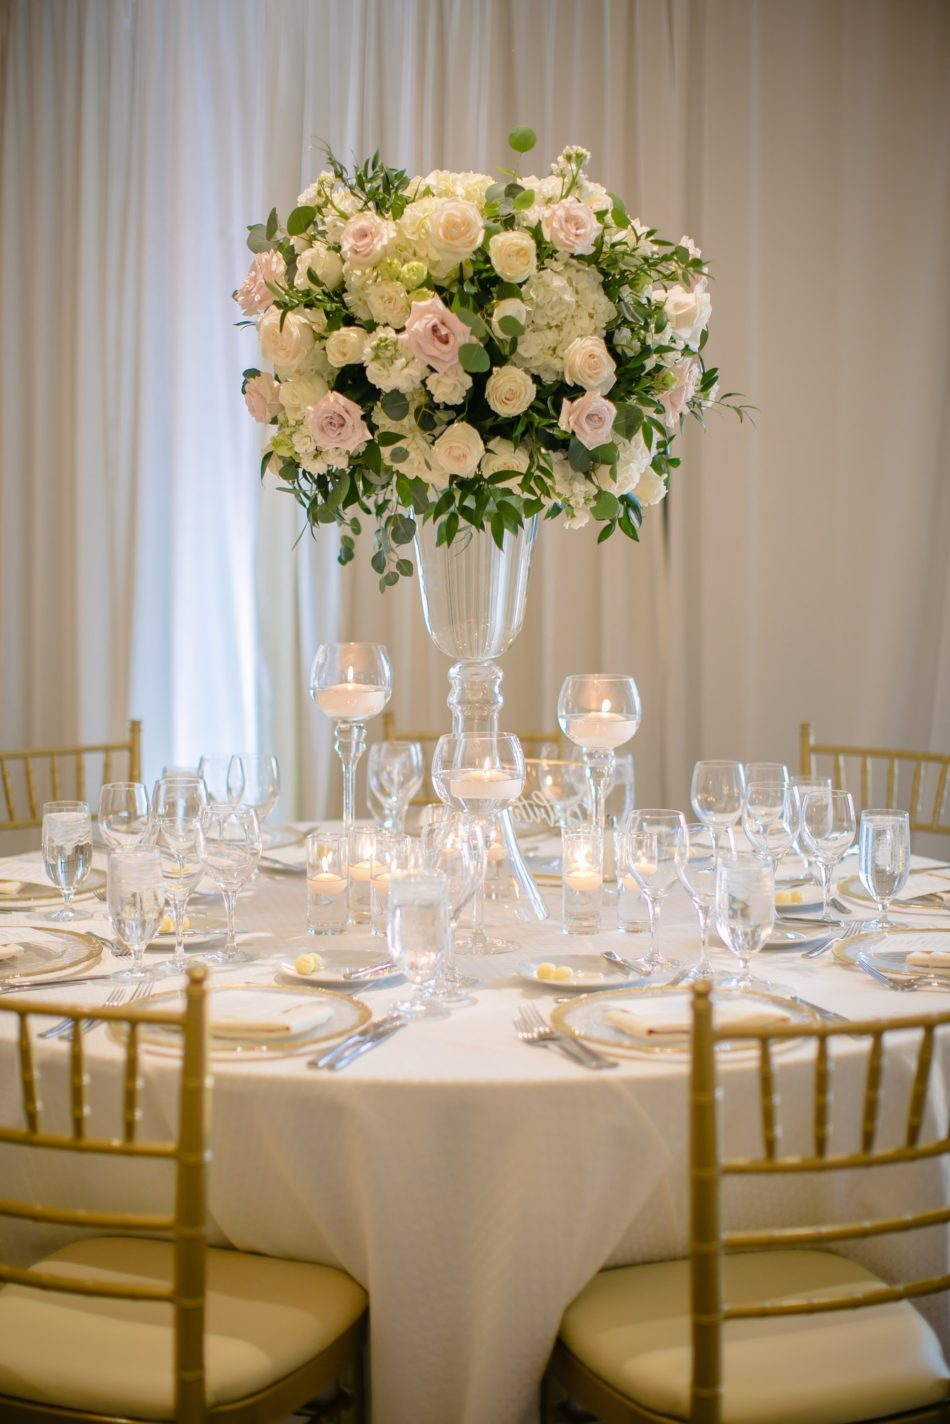 enchanted oceanfront wedding, elevated centerpiece, white centerpiece, blush centerpiece, floral design, florist, wedding florist, wedding flowers, orange county weddings, orange county wedding florist, orange county florist, orange county floral design, flowers by cina